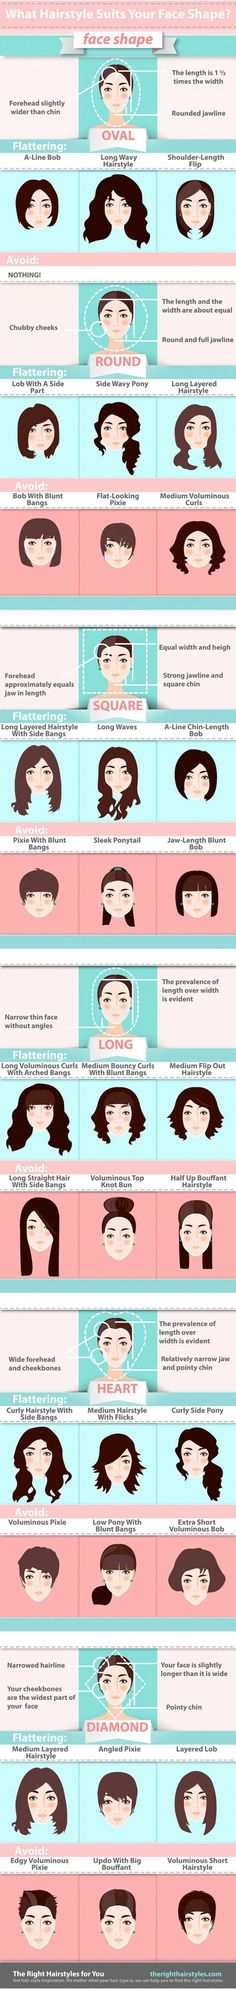 Best Hairstyles for Your Face Shape, check it out at http://makeuptutorials.com/hairstyles-face-shape-makeup-tutorials